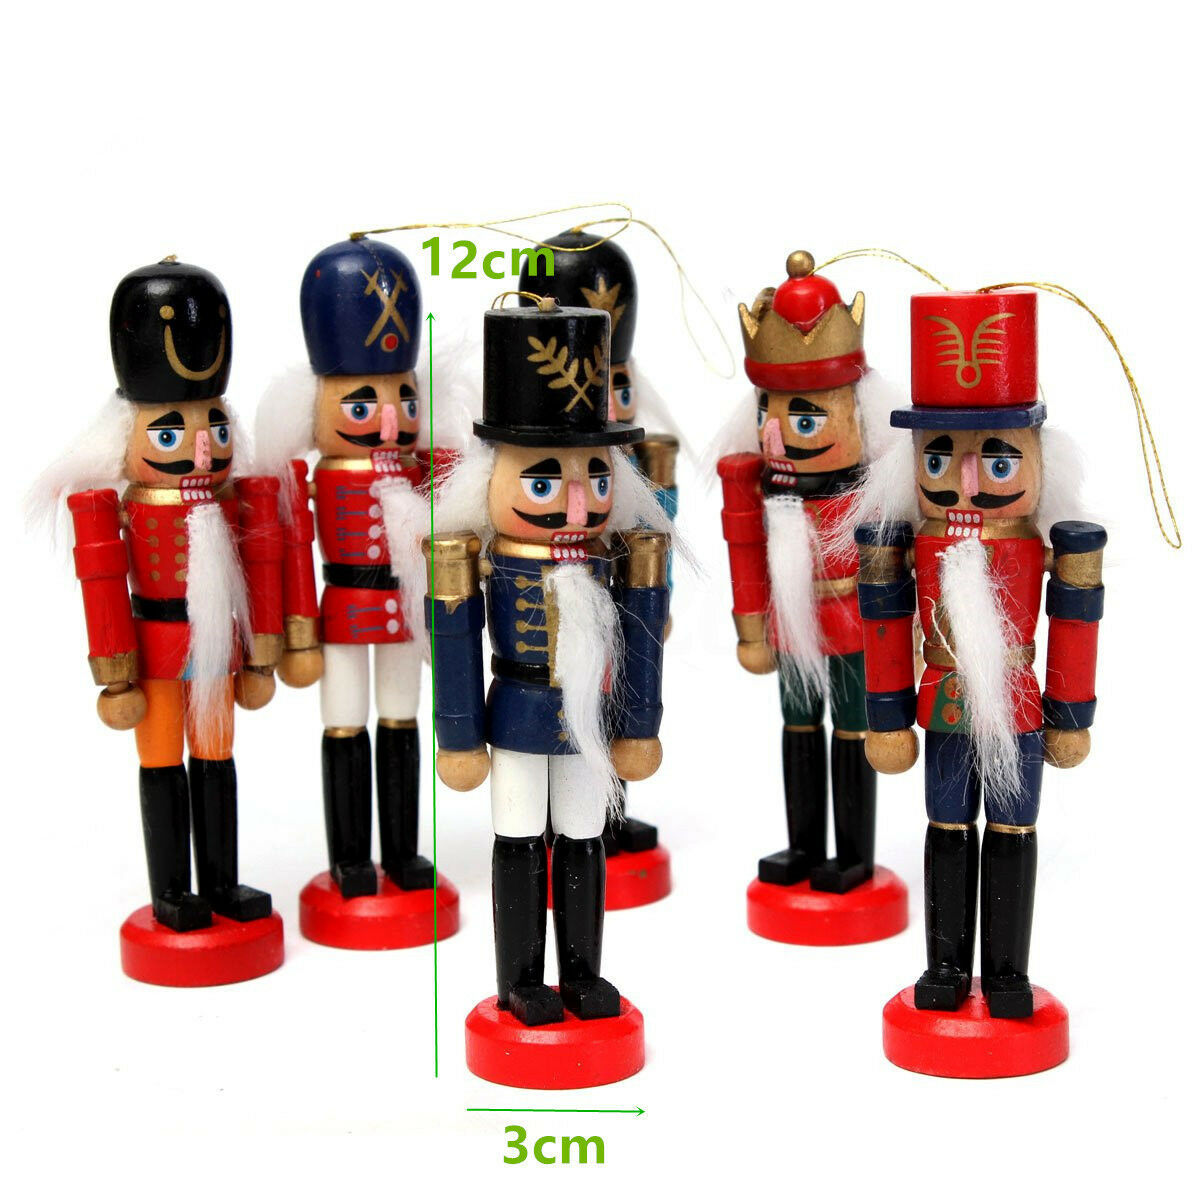 6pcs 12cm Wooden Nutcracker Puppet Toy Solider Handcraft Christmas ...